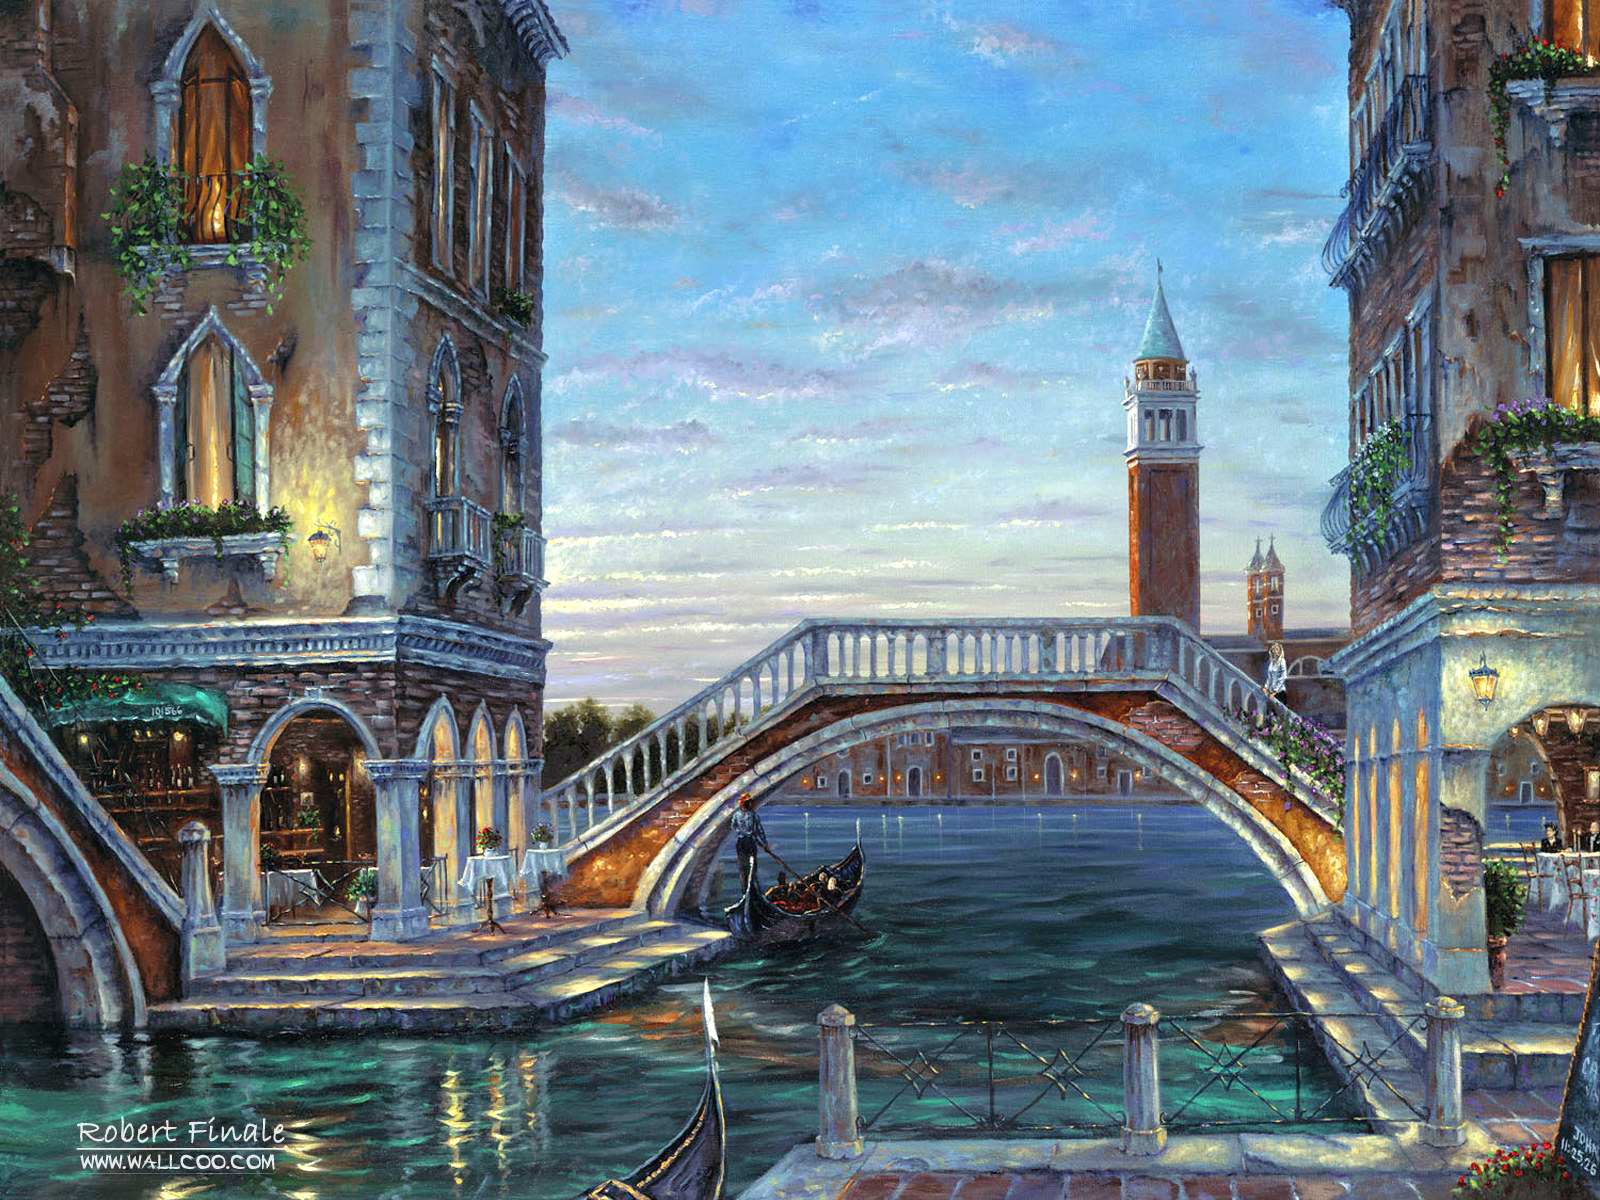 Romantic Painting the town 5262